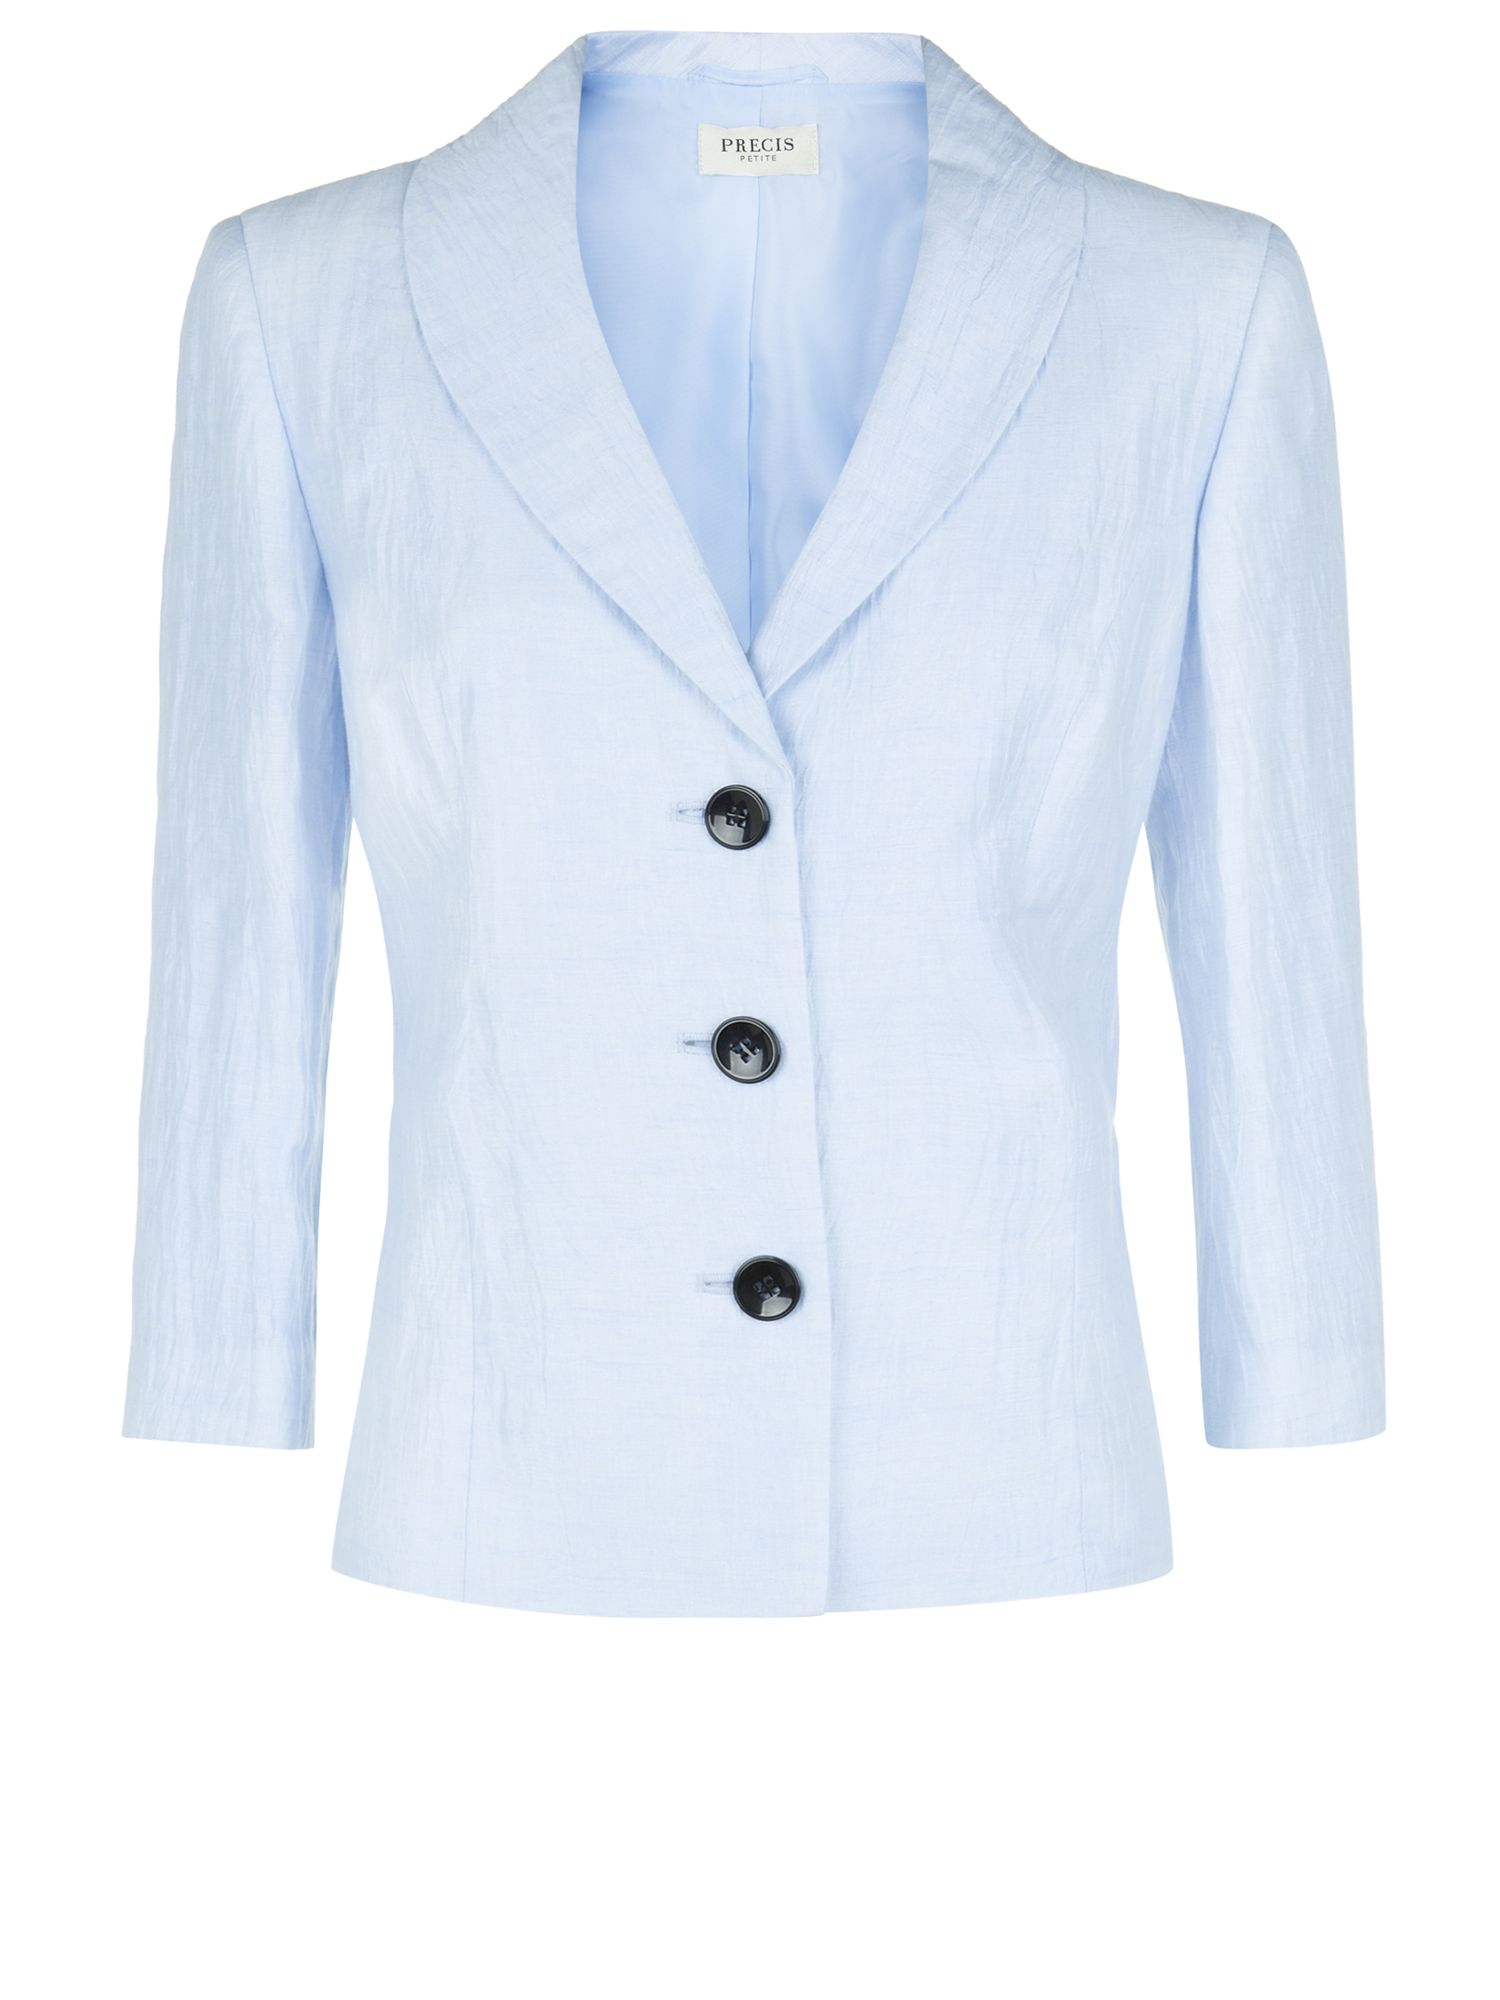 Powder blue crinkle jacket